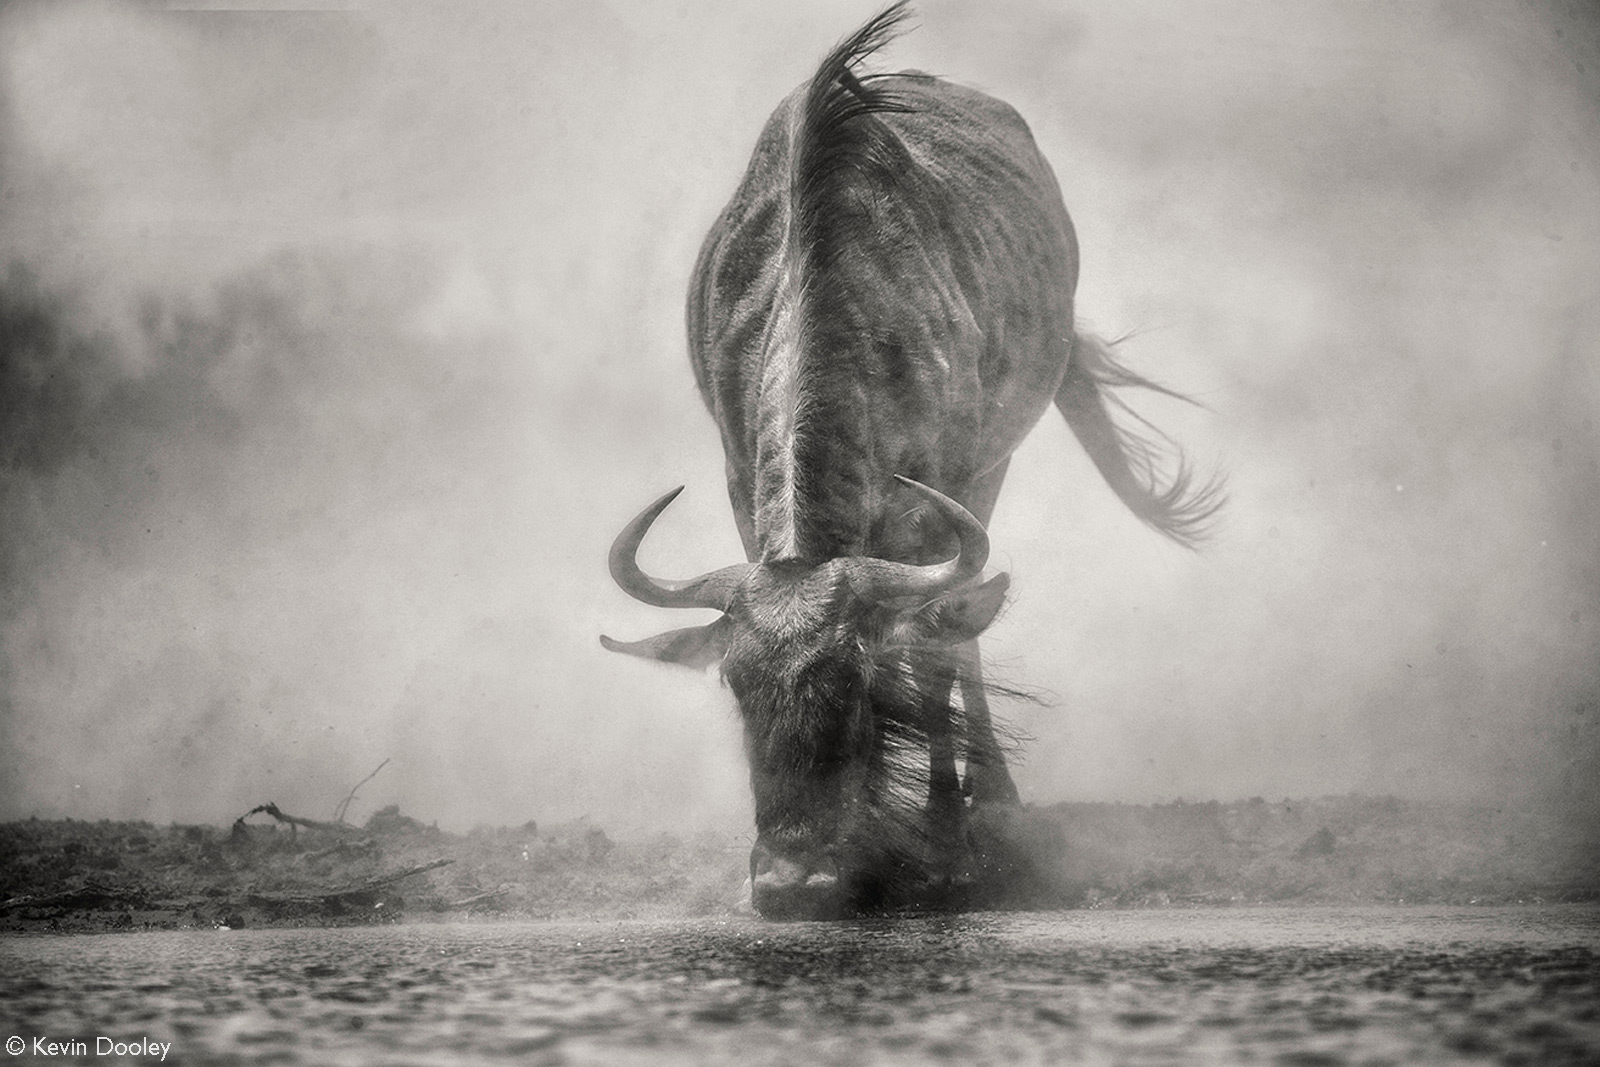 A massive dust storm brings this thirsty wildebeest to water. Mashatu Game Reserve, Botswana © Kevin Dooley